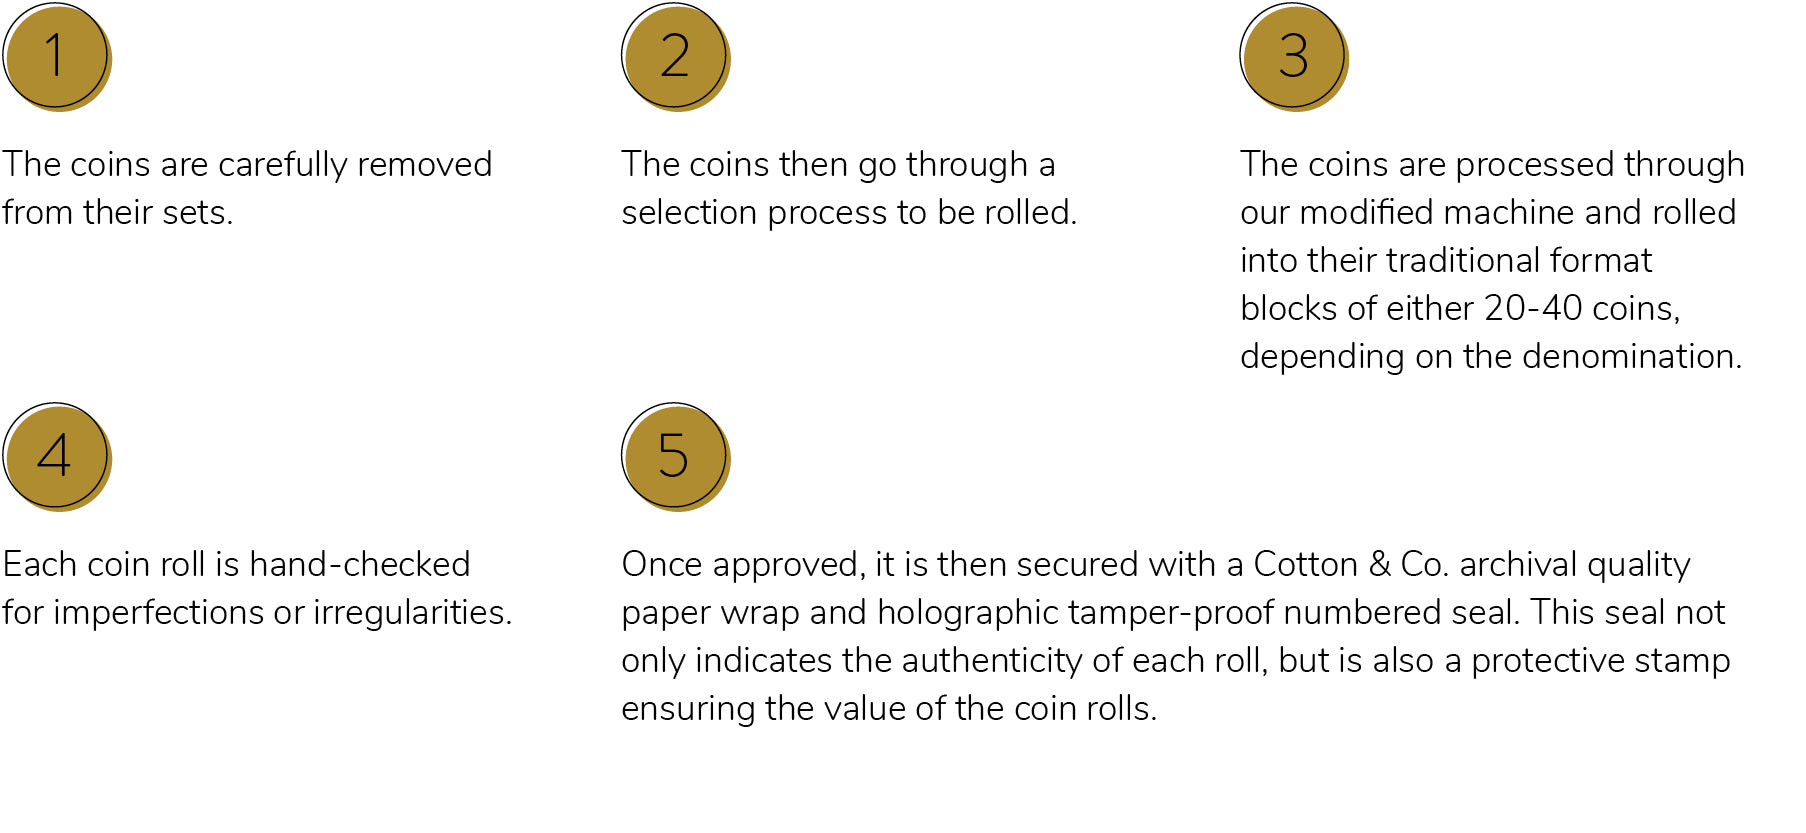 HOW THE COIN ROLLING PROCESS WORKS